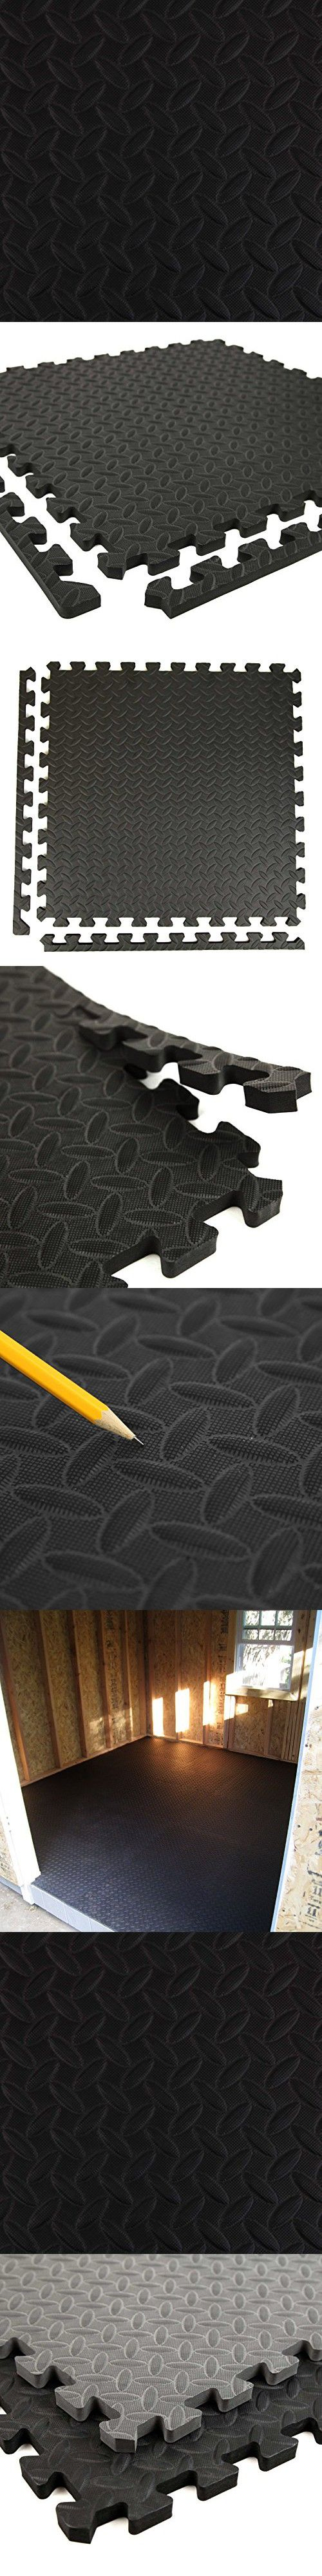 incstores diamond soft extra thick anti fatigue foam tiles 25 pack black